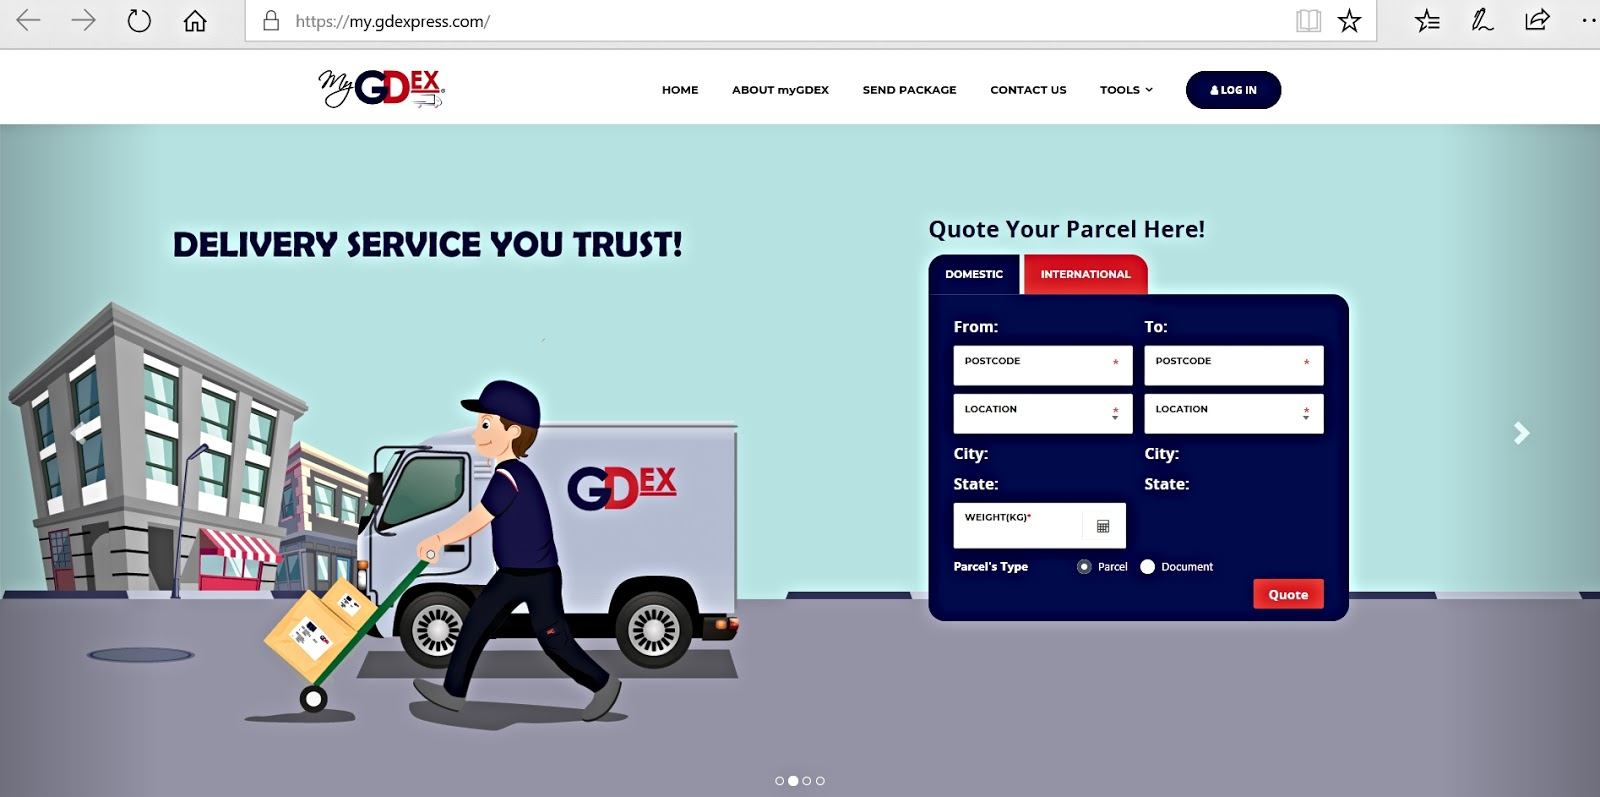 Trustable And Secure Delivery Service Platform By myGDex - Betty\'s ...